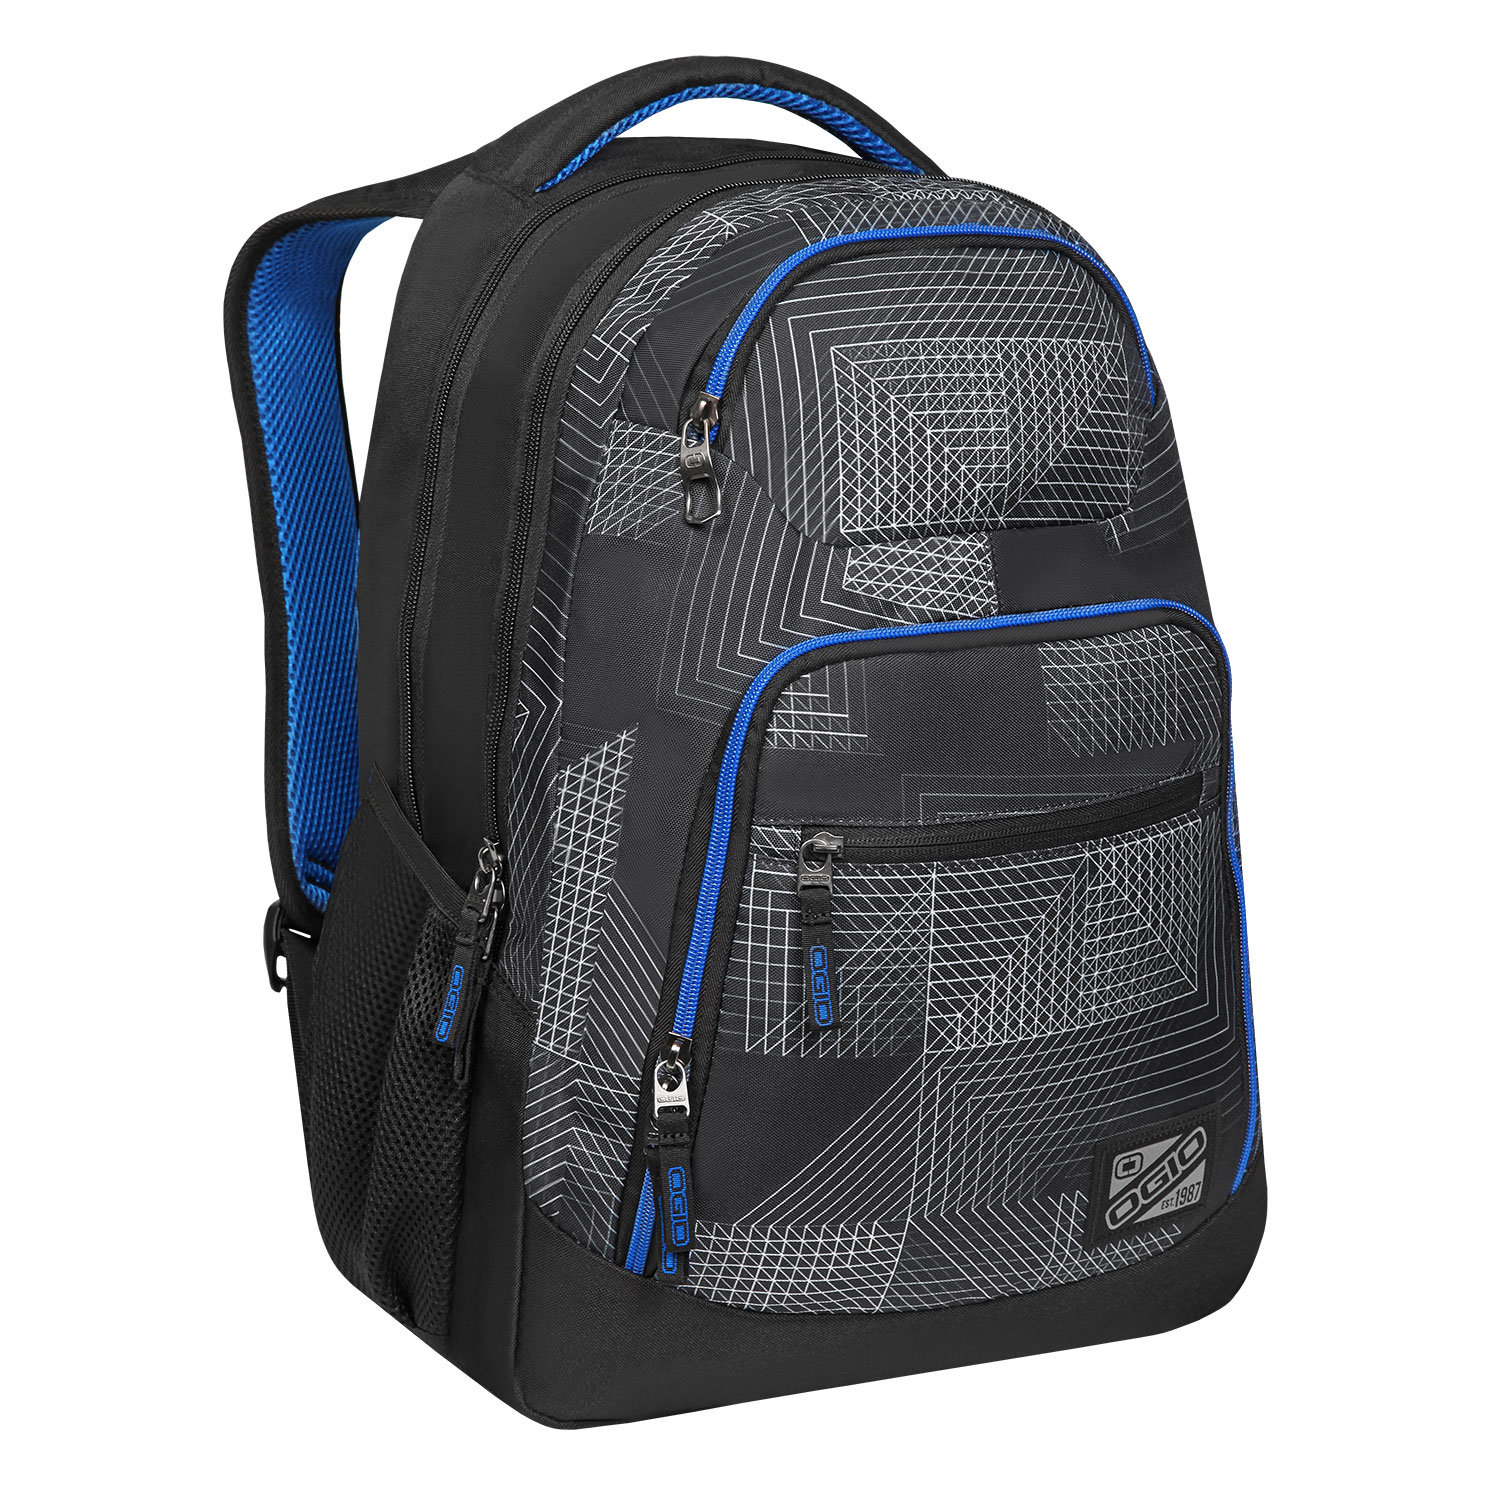 Ogio: New Collection Of Backpacks & Bags.